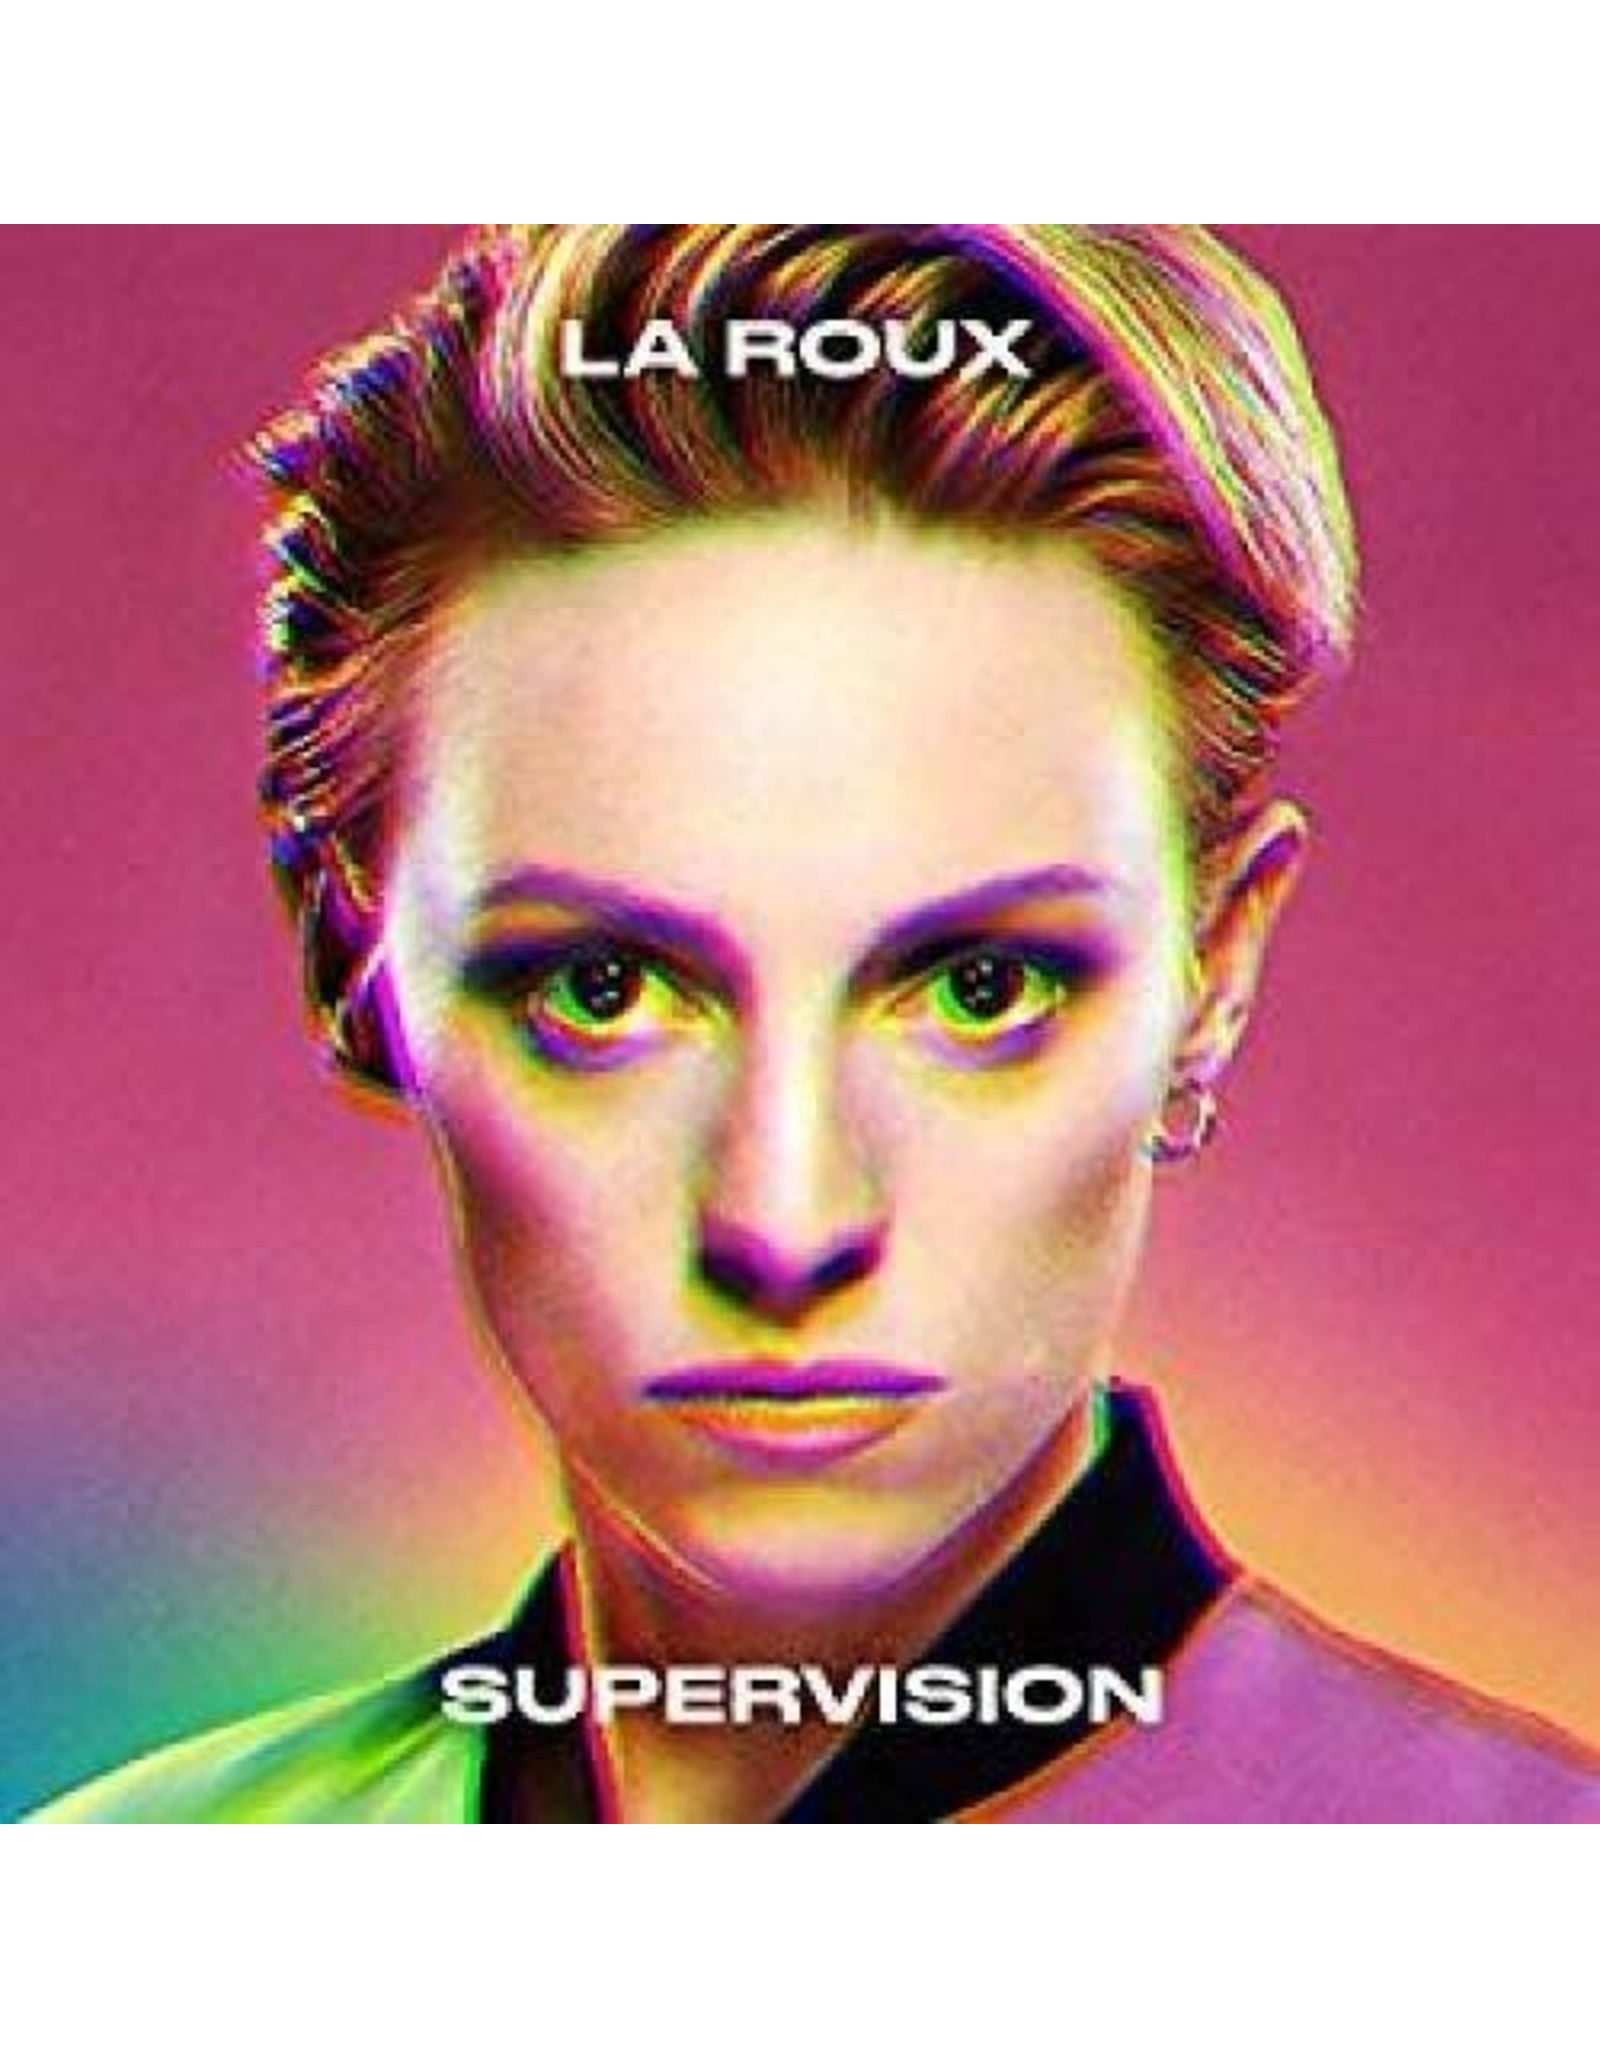 La Roux - Supervision LP